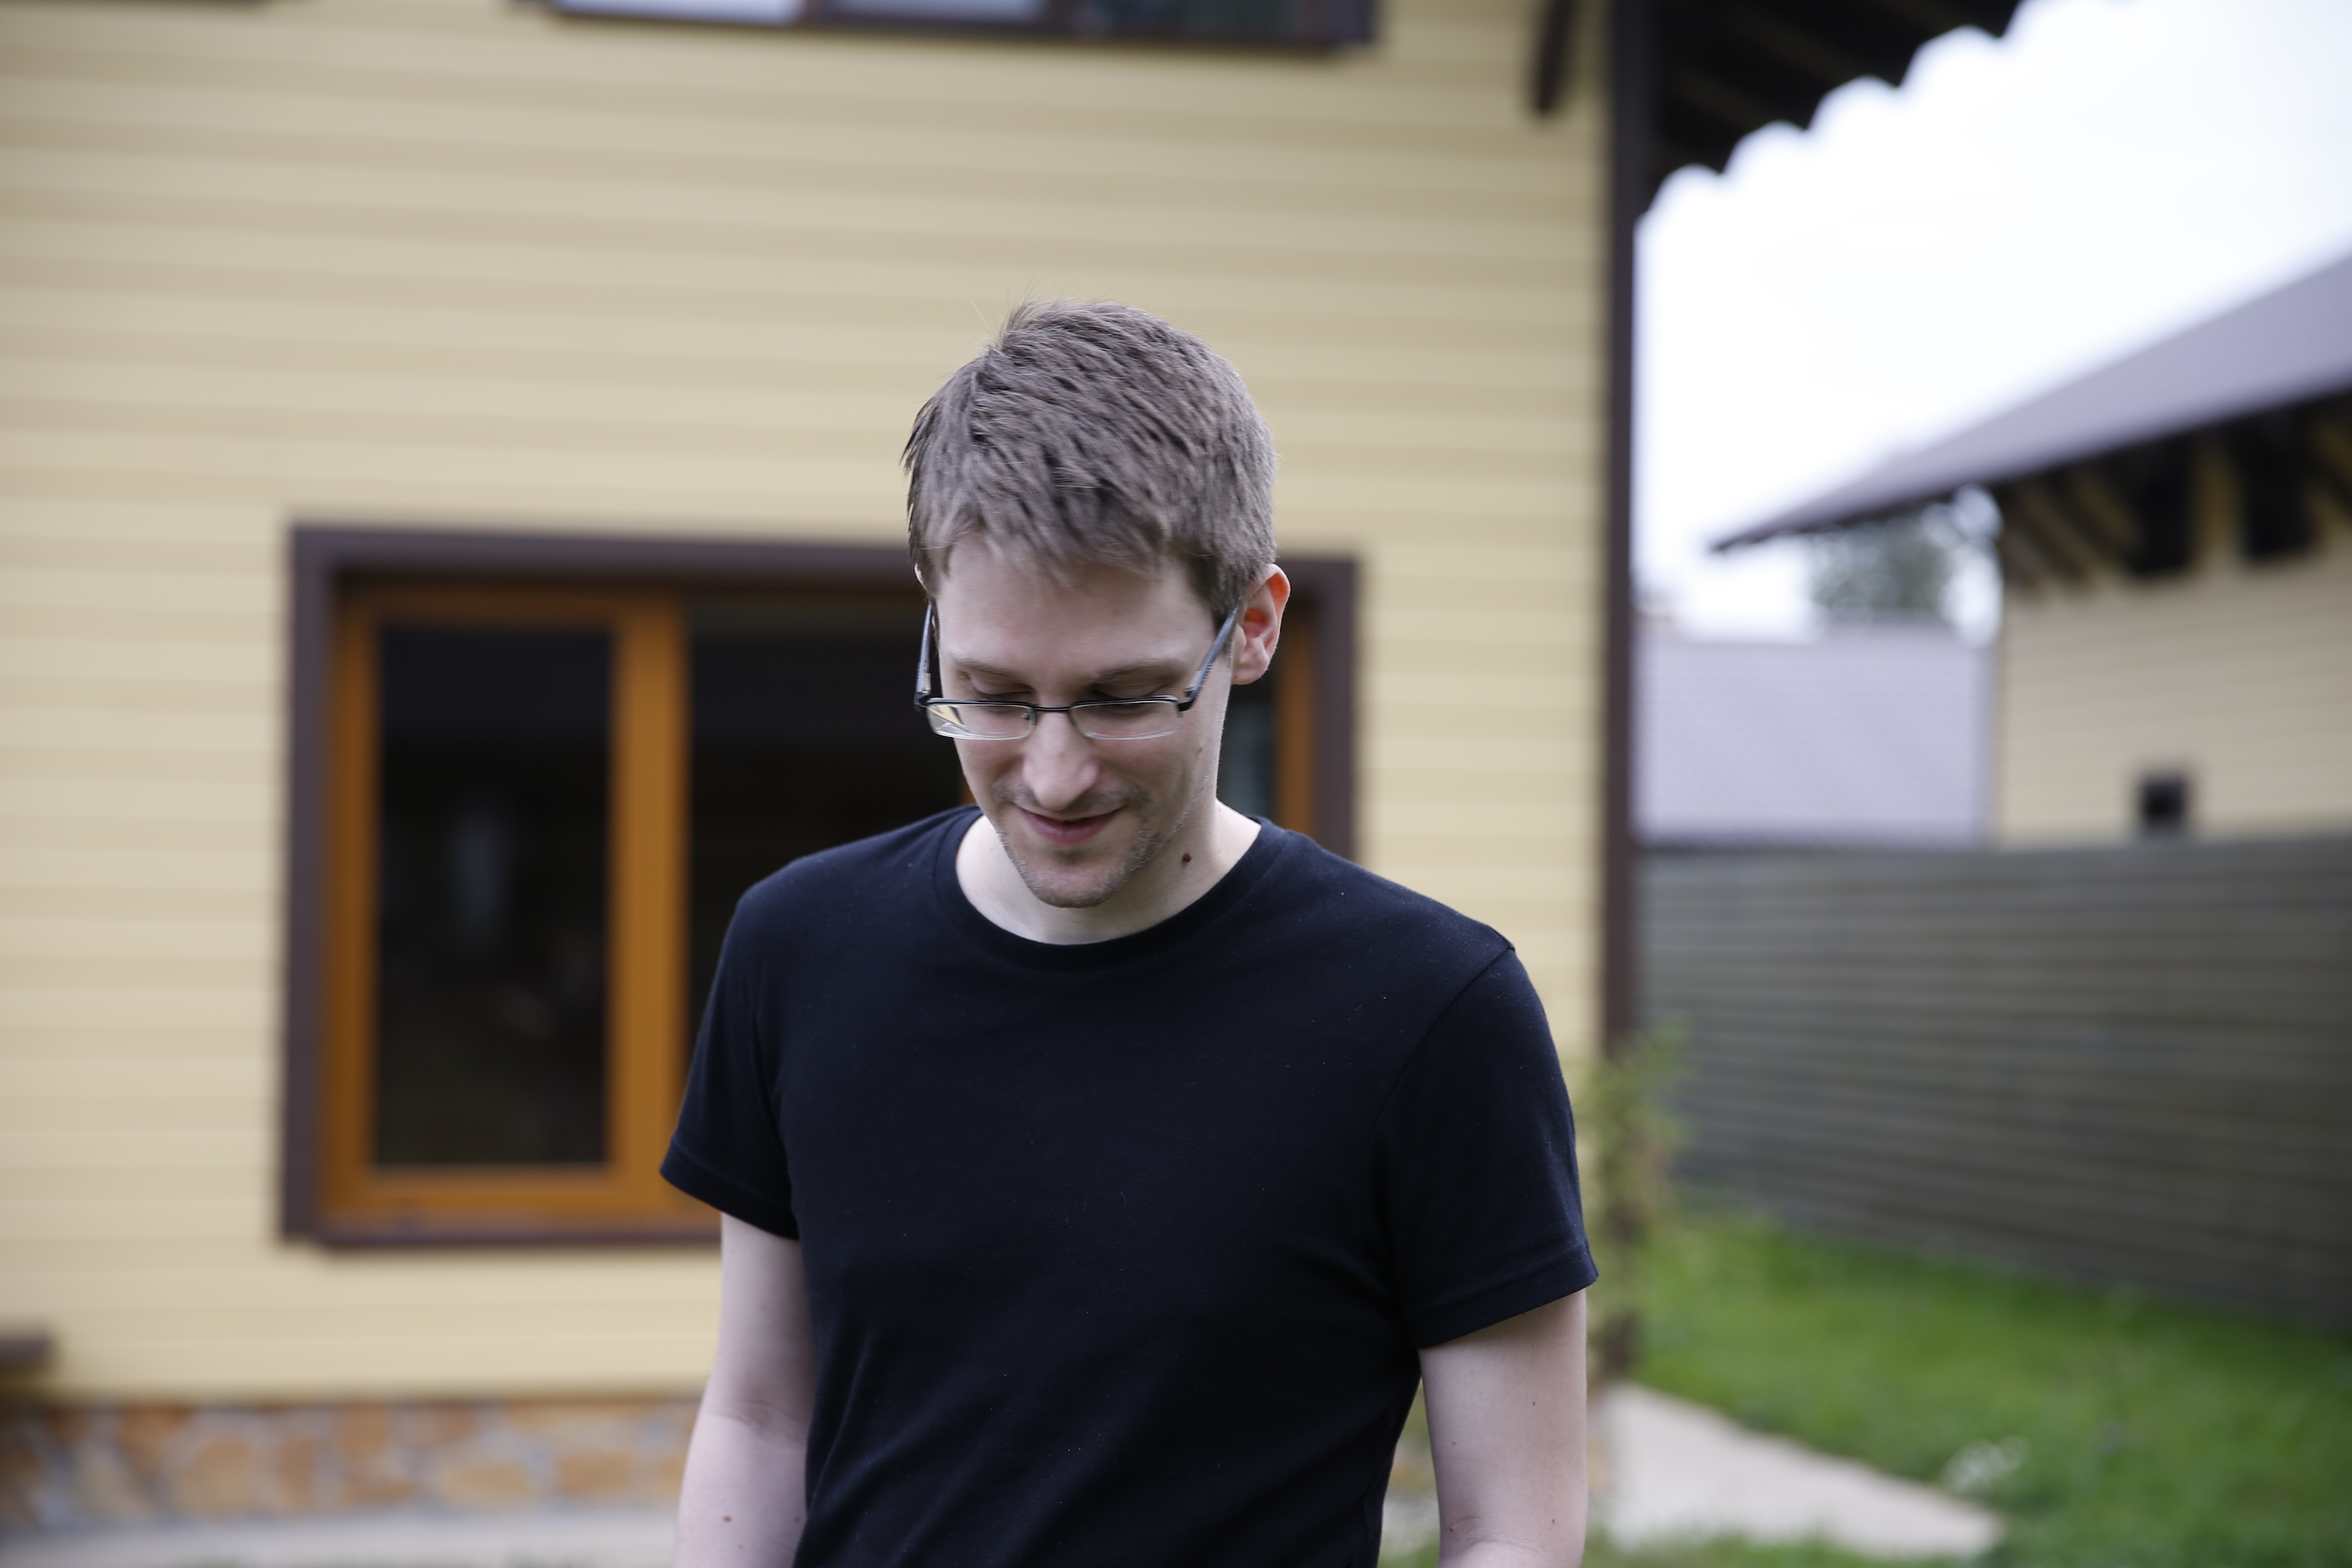 1_CITIZENFOUR